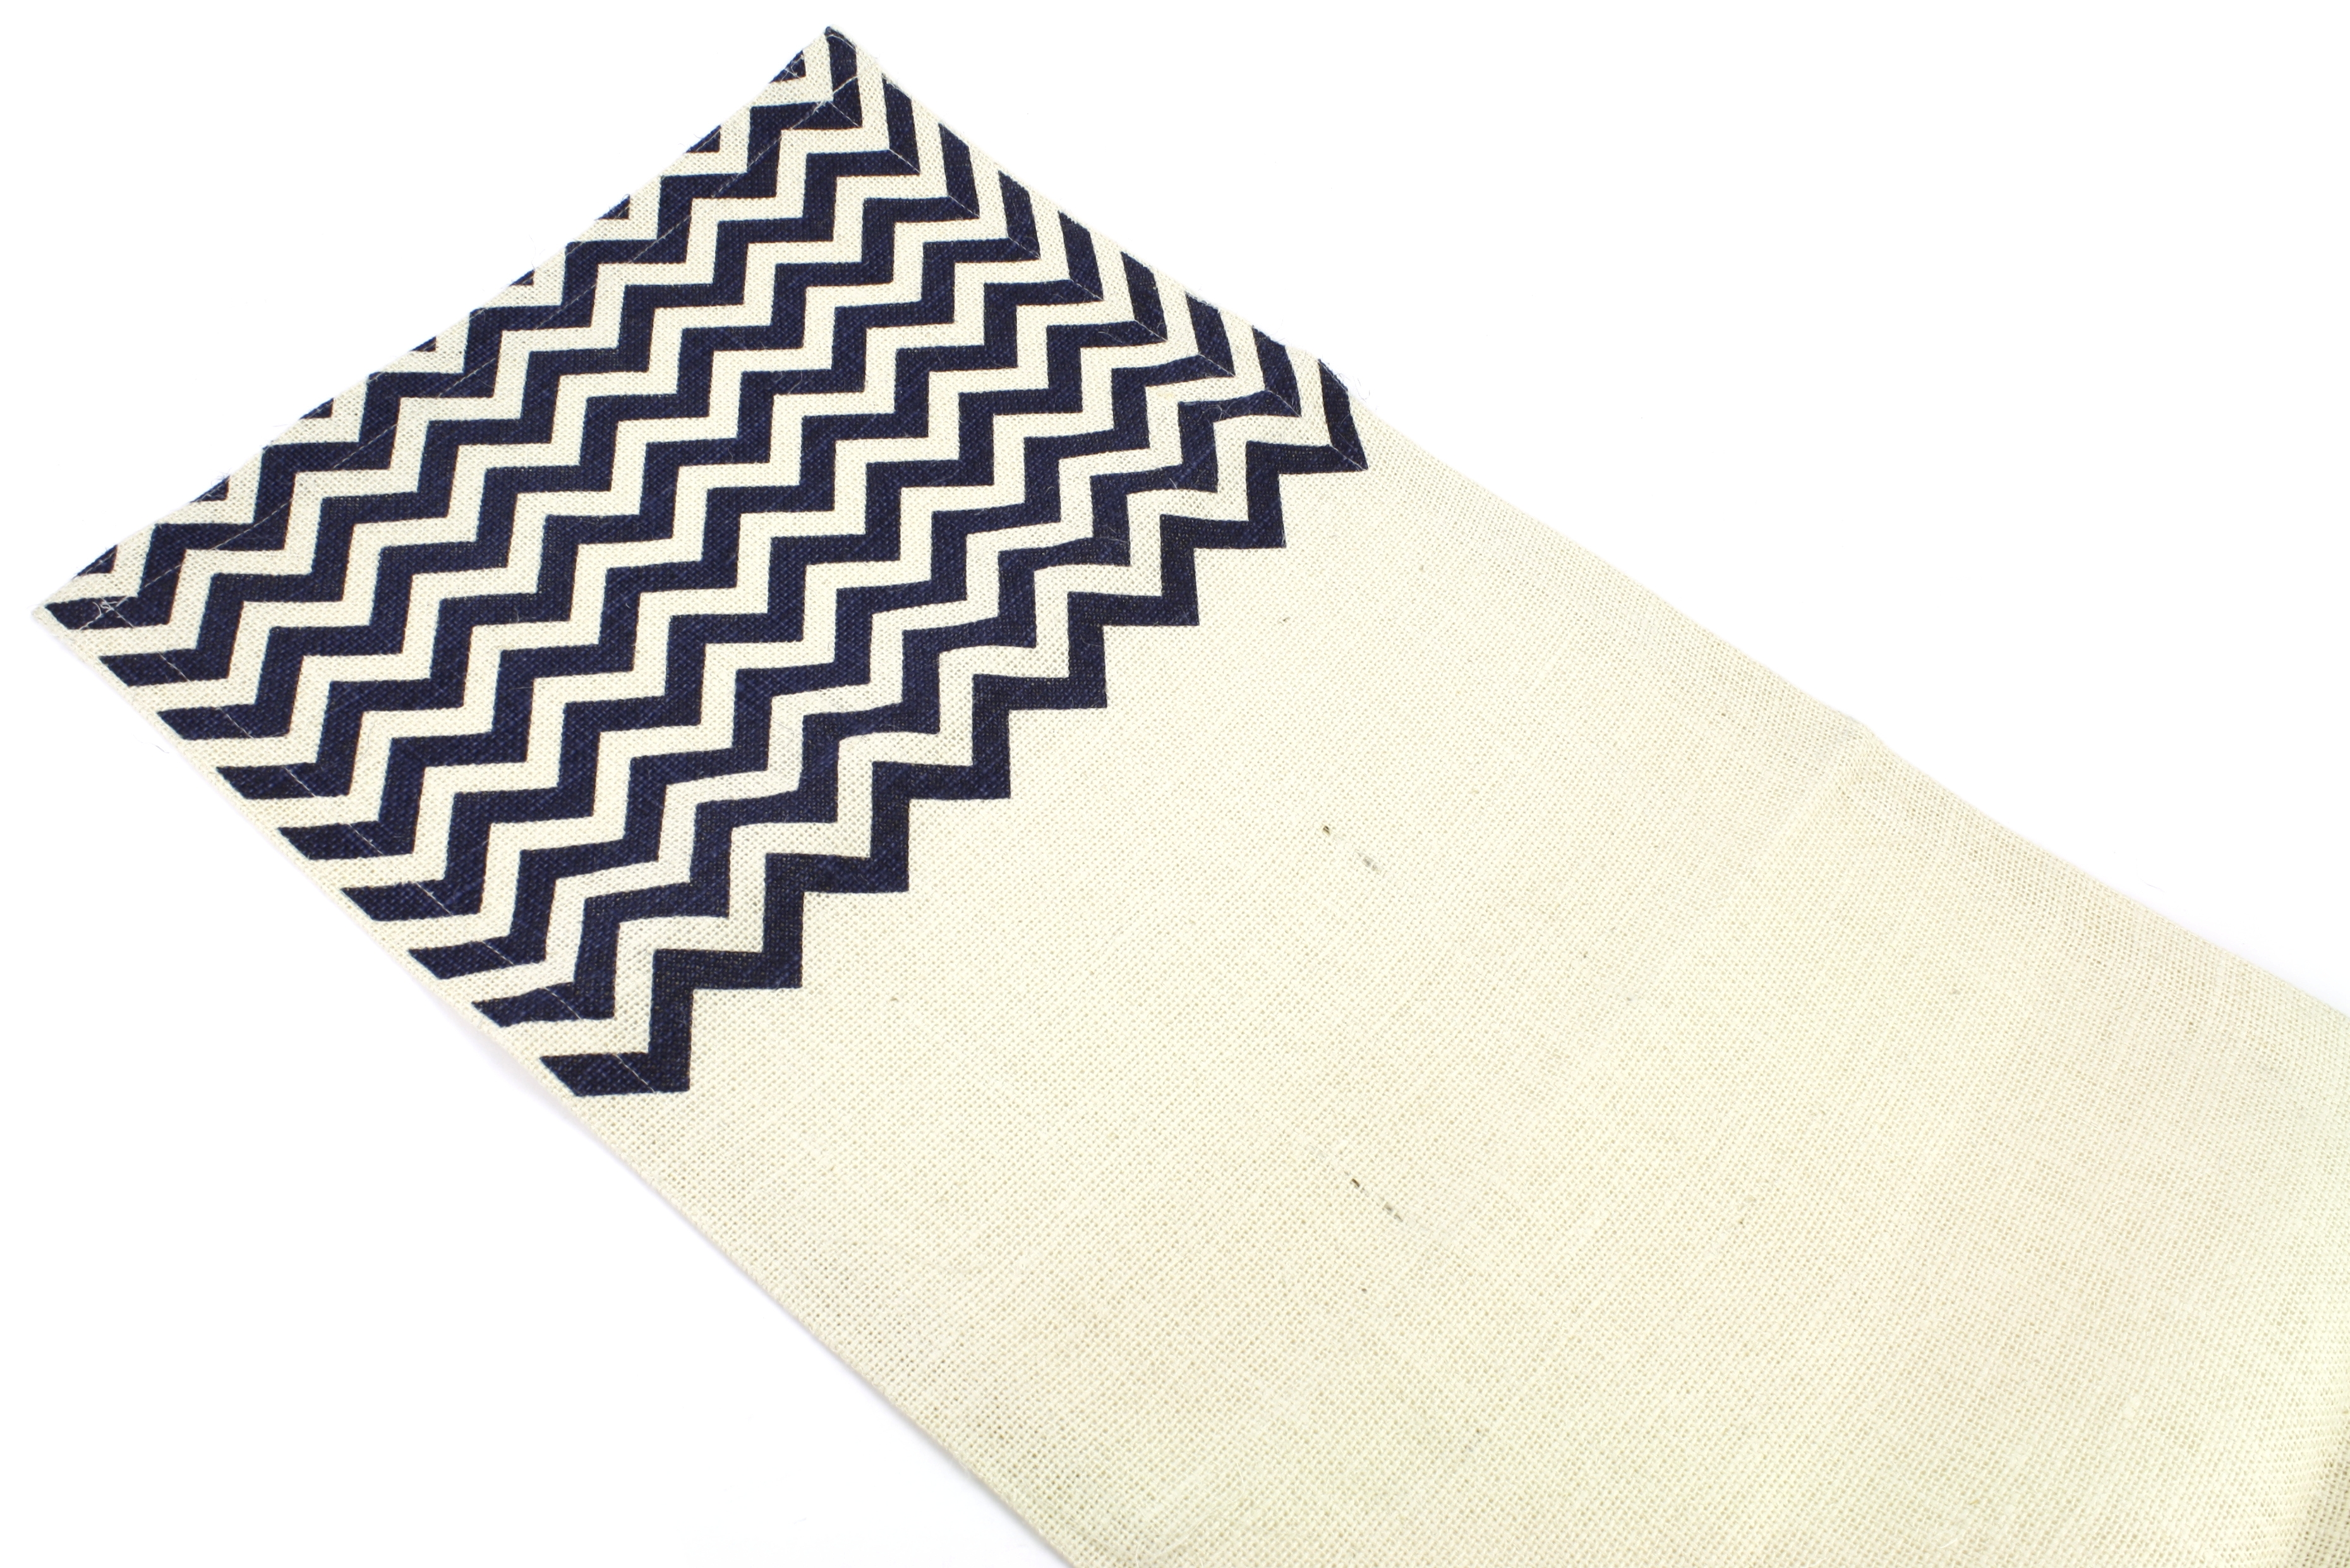 "Chevron Burlap Table Runner - 14"" x 70"" Ivory/Navy"